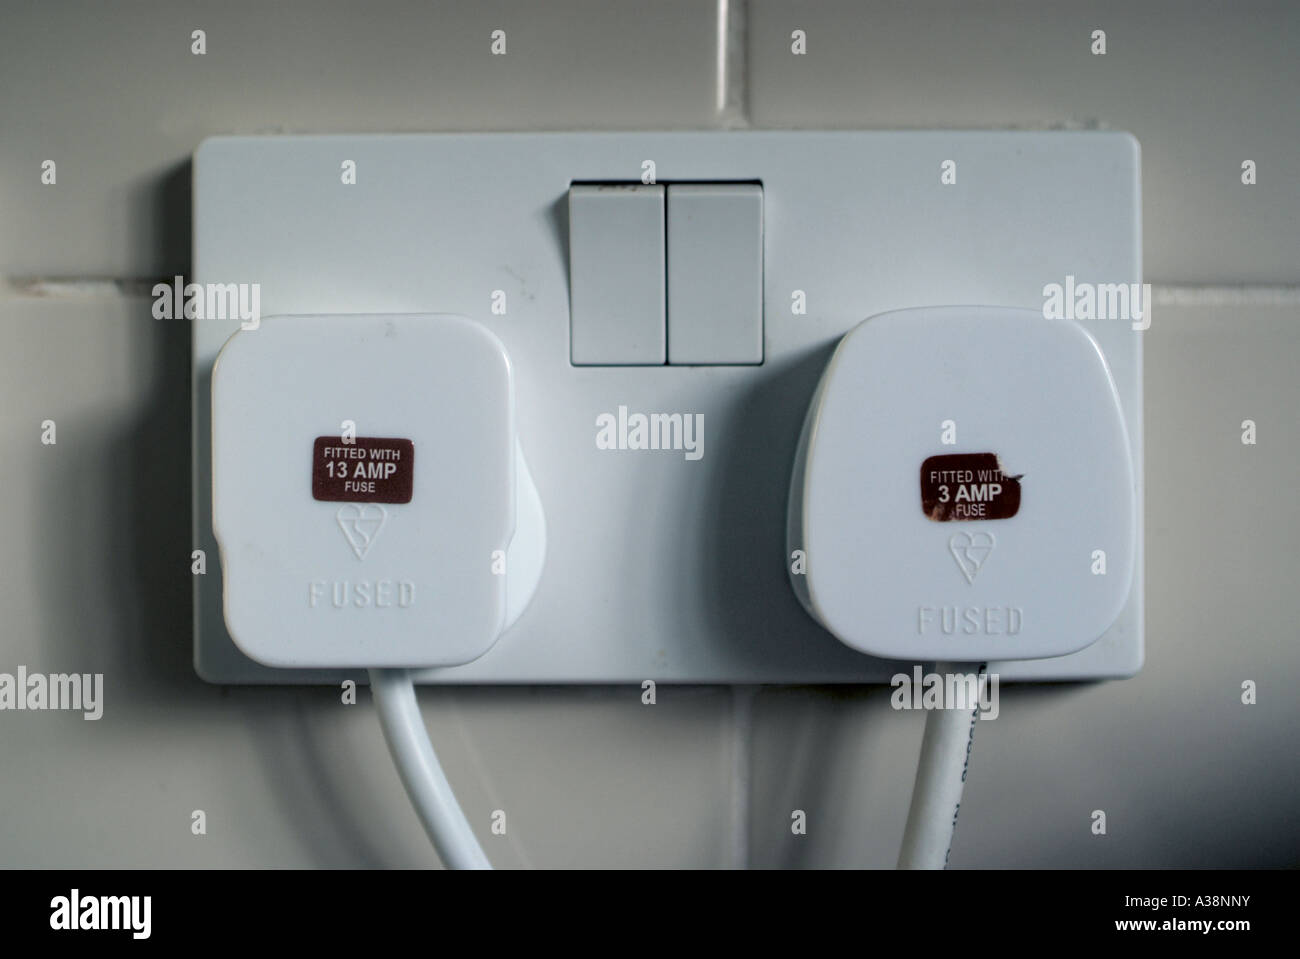 13 Amp Fuse Stock Photos & 13 Amp Fuse Stock Images - Alamy